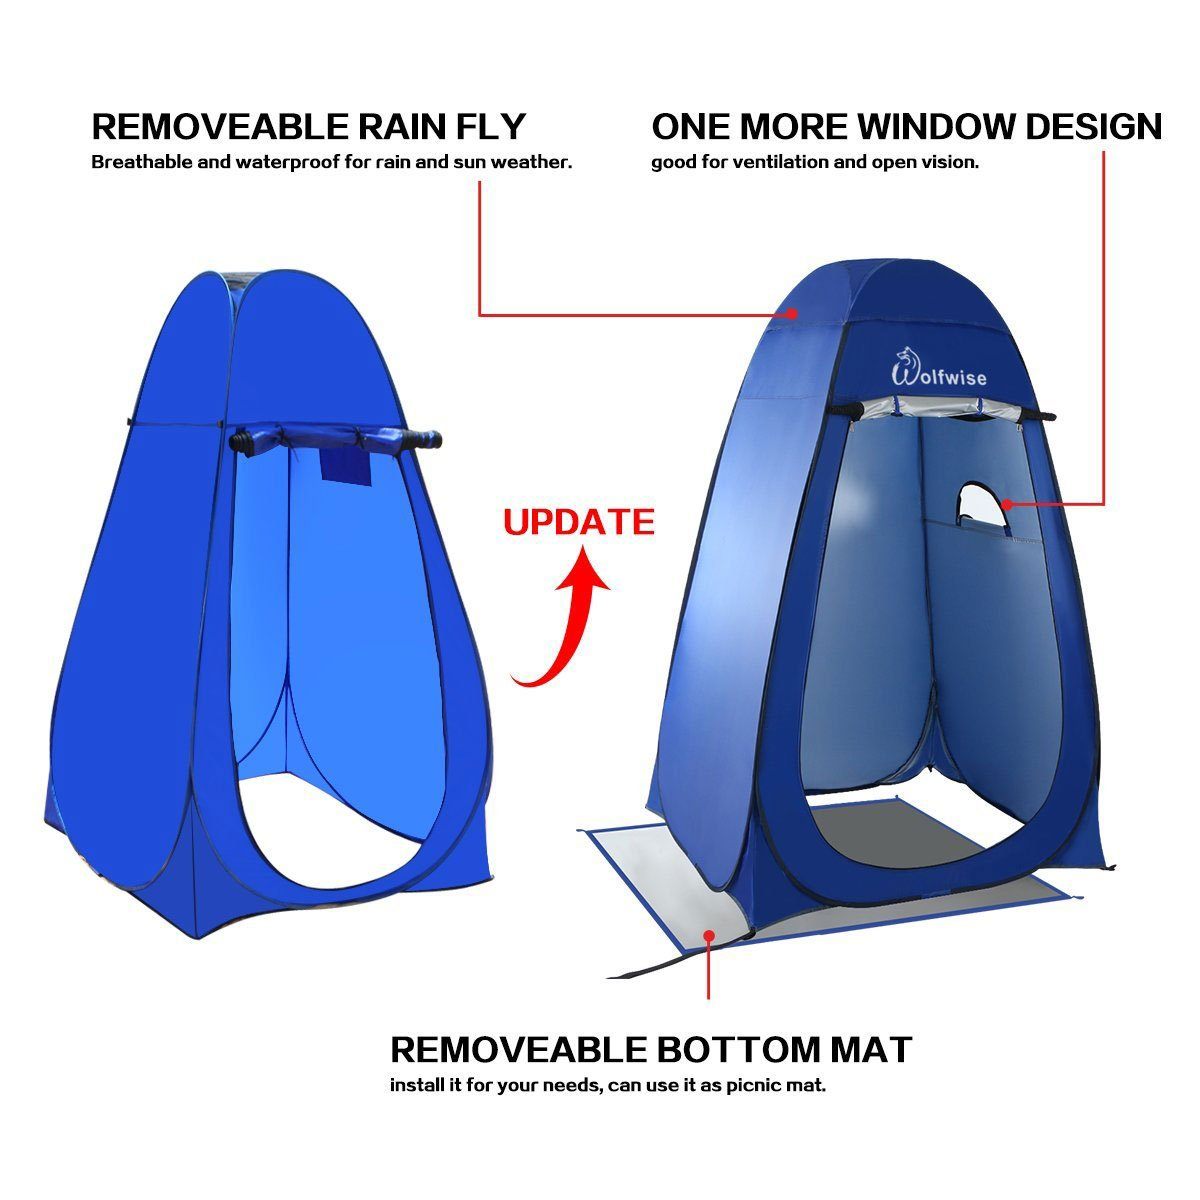 Wolfwise Pop Up Privacy Portable Camping Biking Toilet